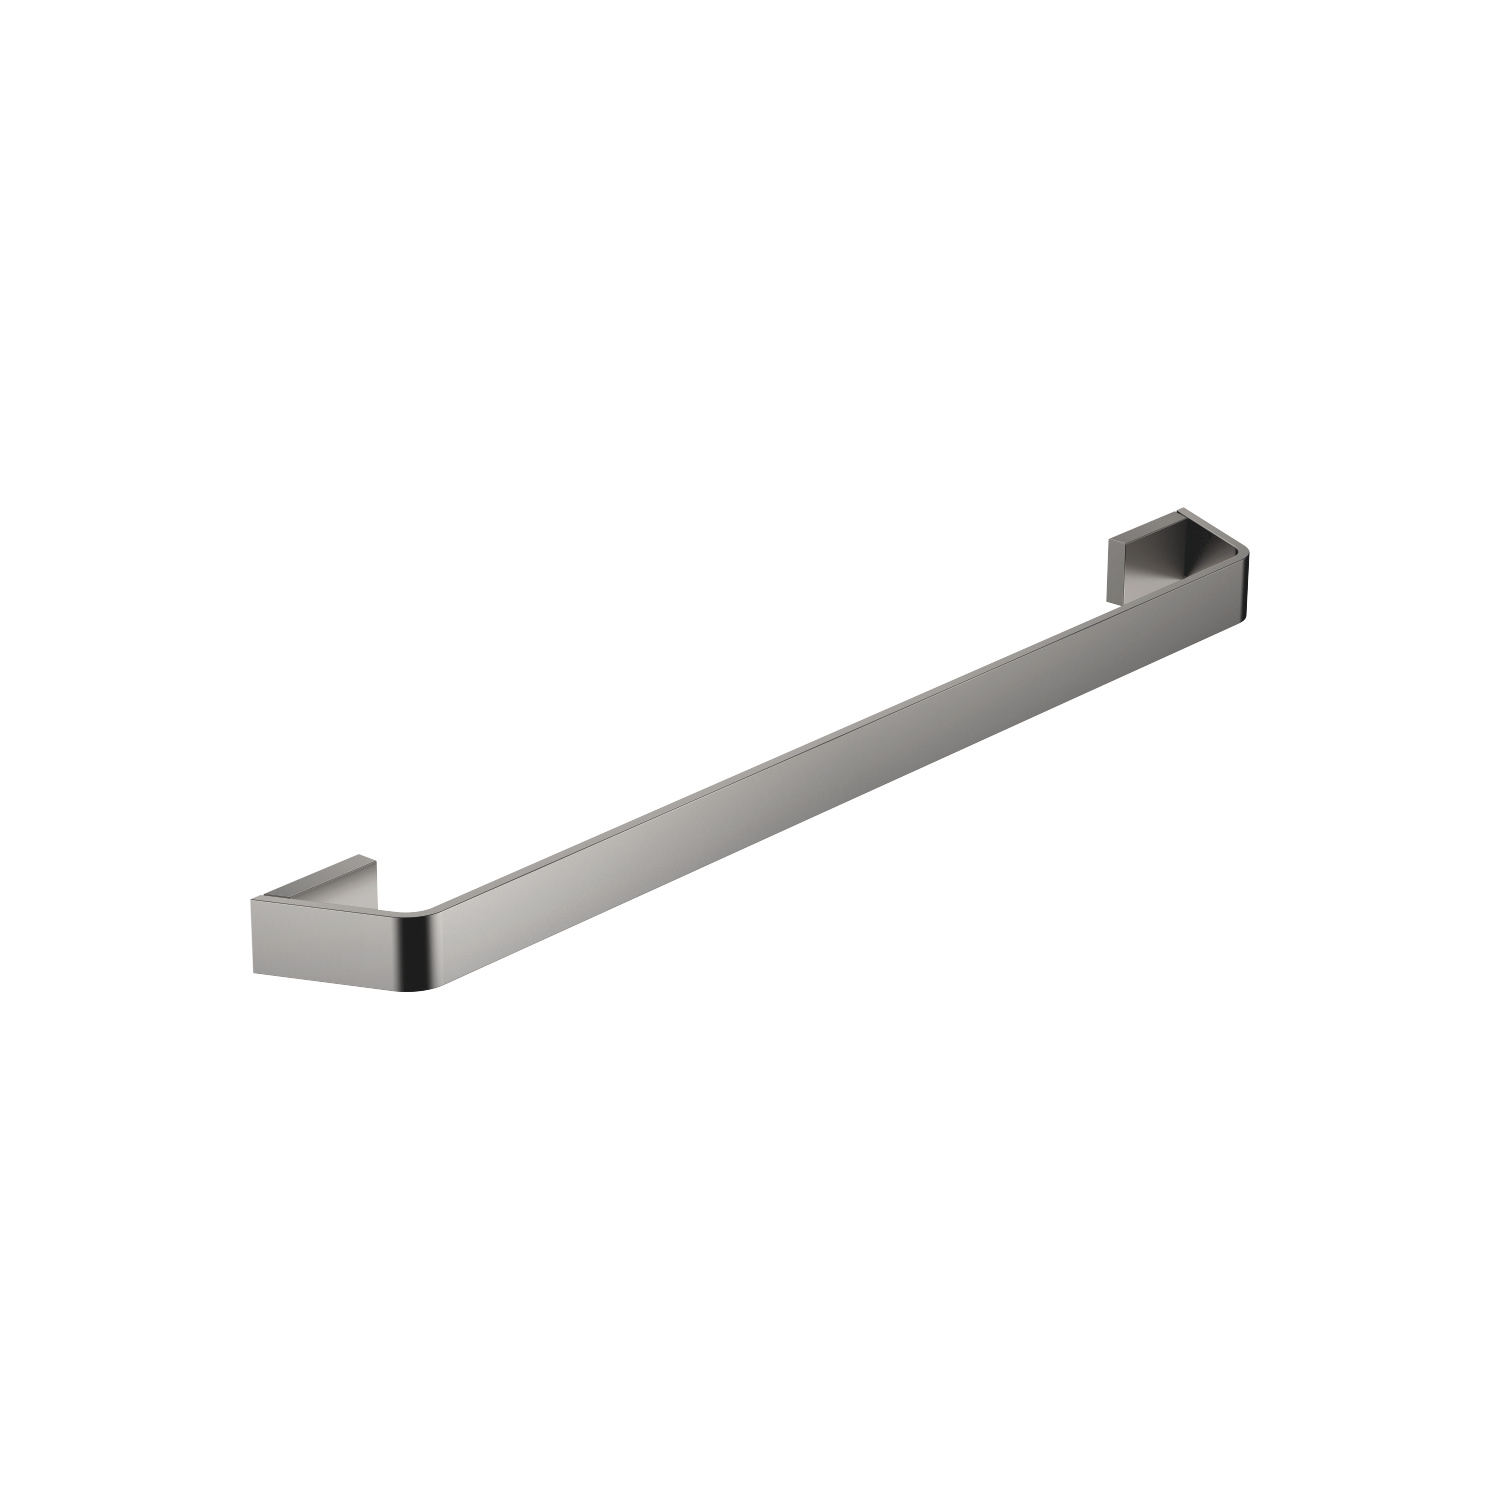 Towel bar - Dark Platinum matt